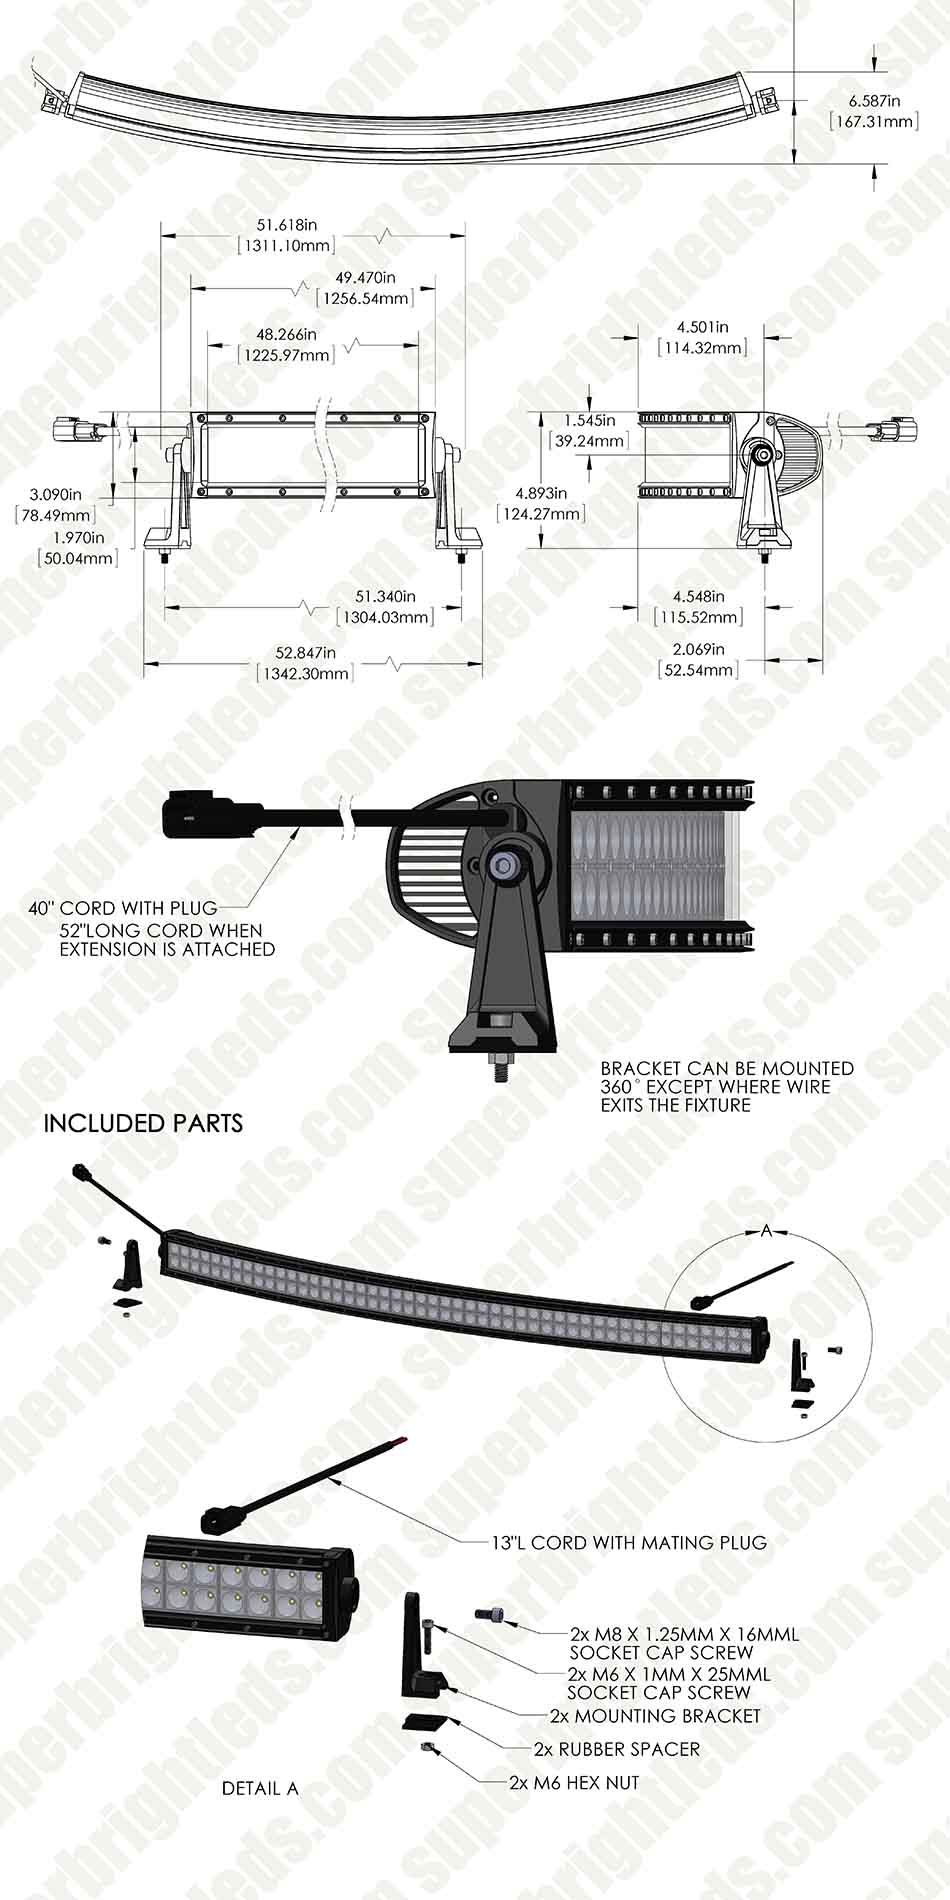 Curving Led Wiring Diagram For Use Blog About Diagrams M8 3 Pin 50 Off Road Curved Light Bar 231w 23040 Lumens Super Lamp